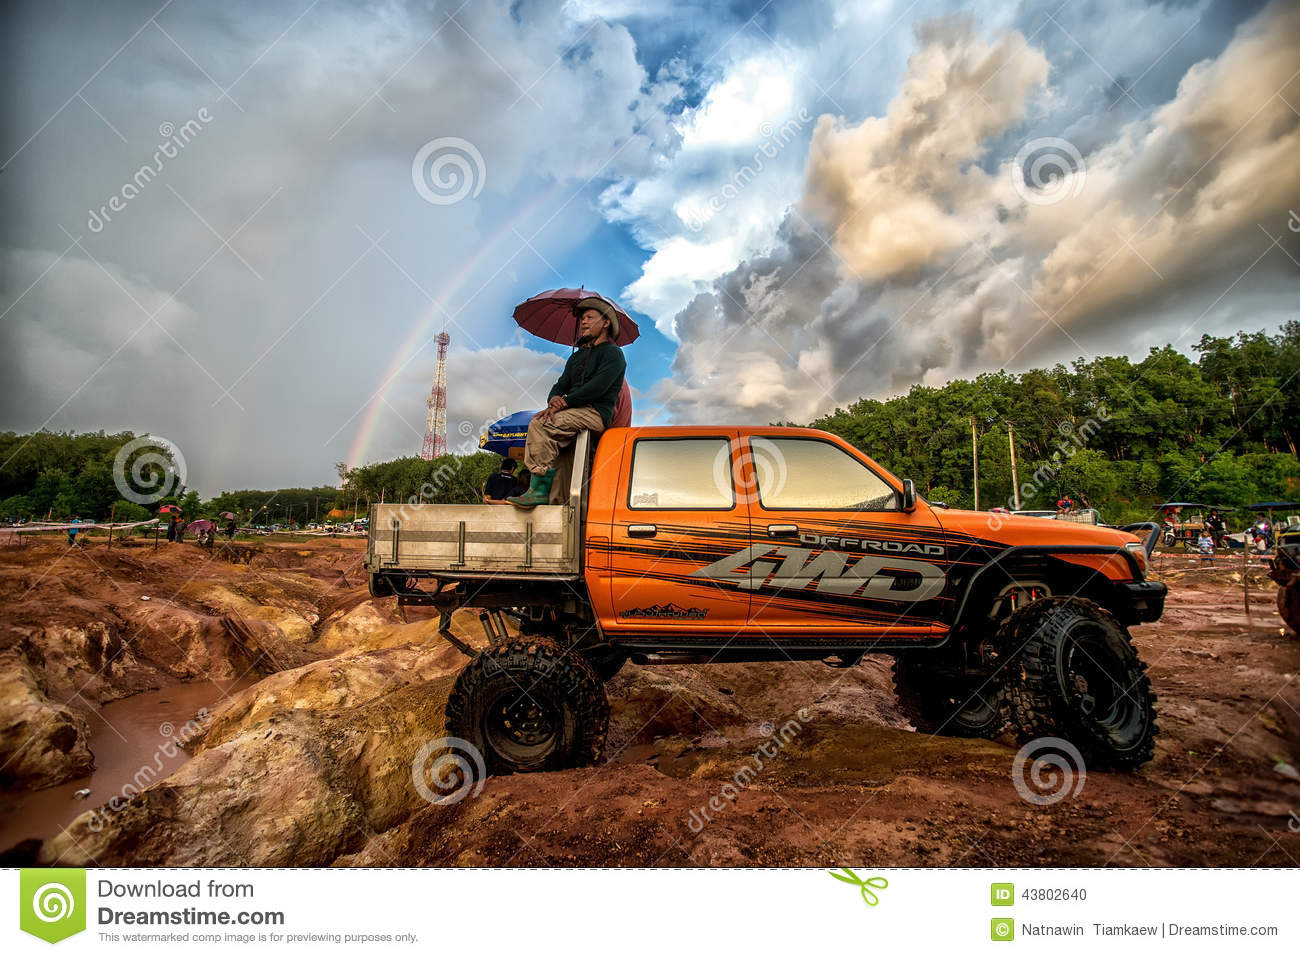 Colorado Trails, Off Road Parks, ATV Trails, Motocross Tracks 4x4 off road pictures free